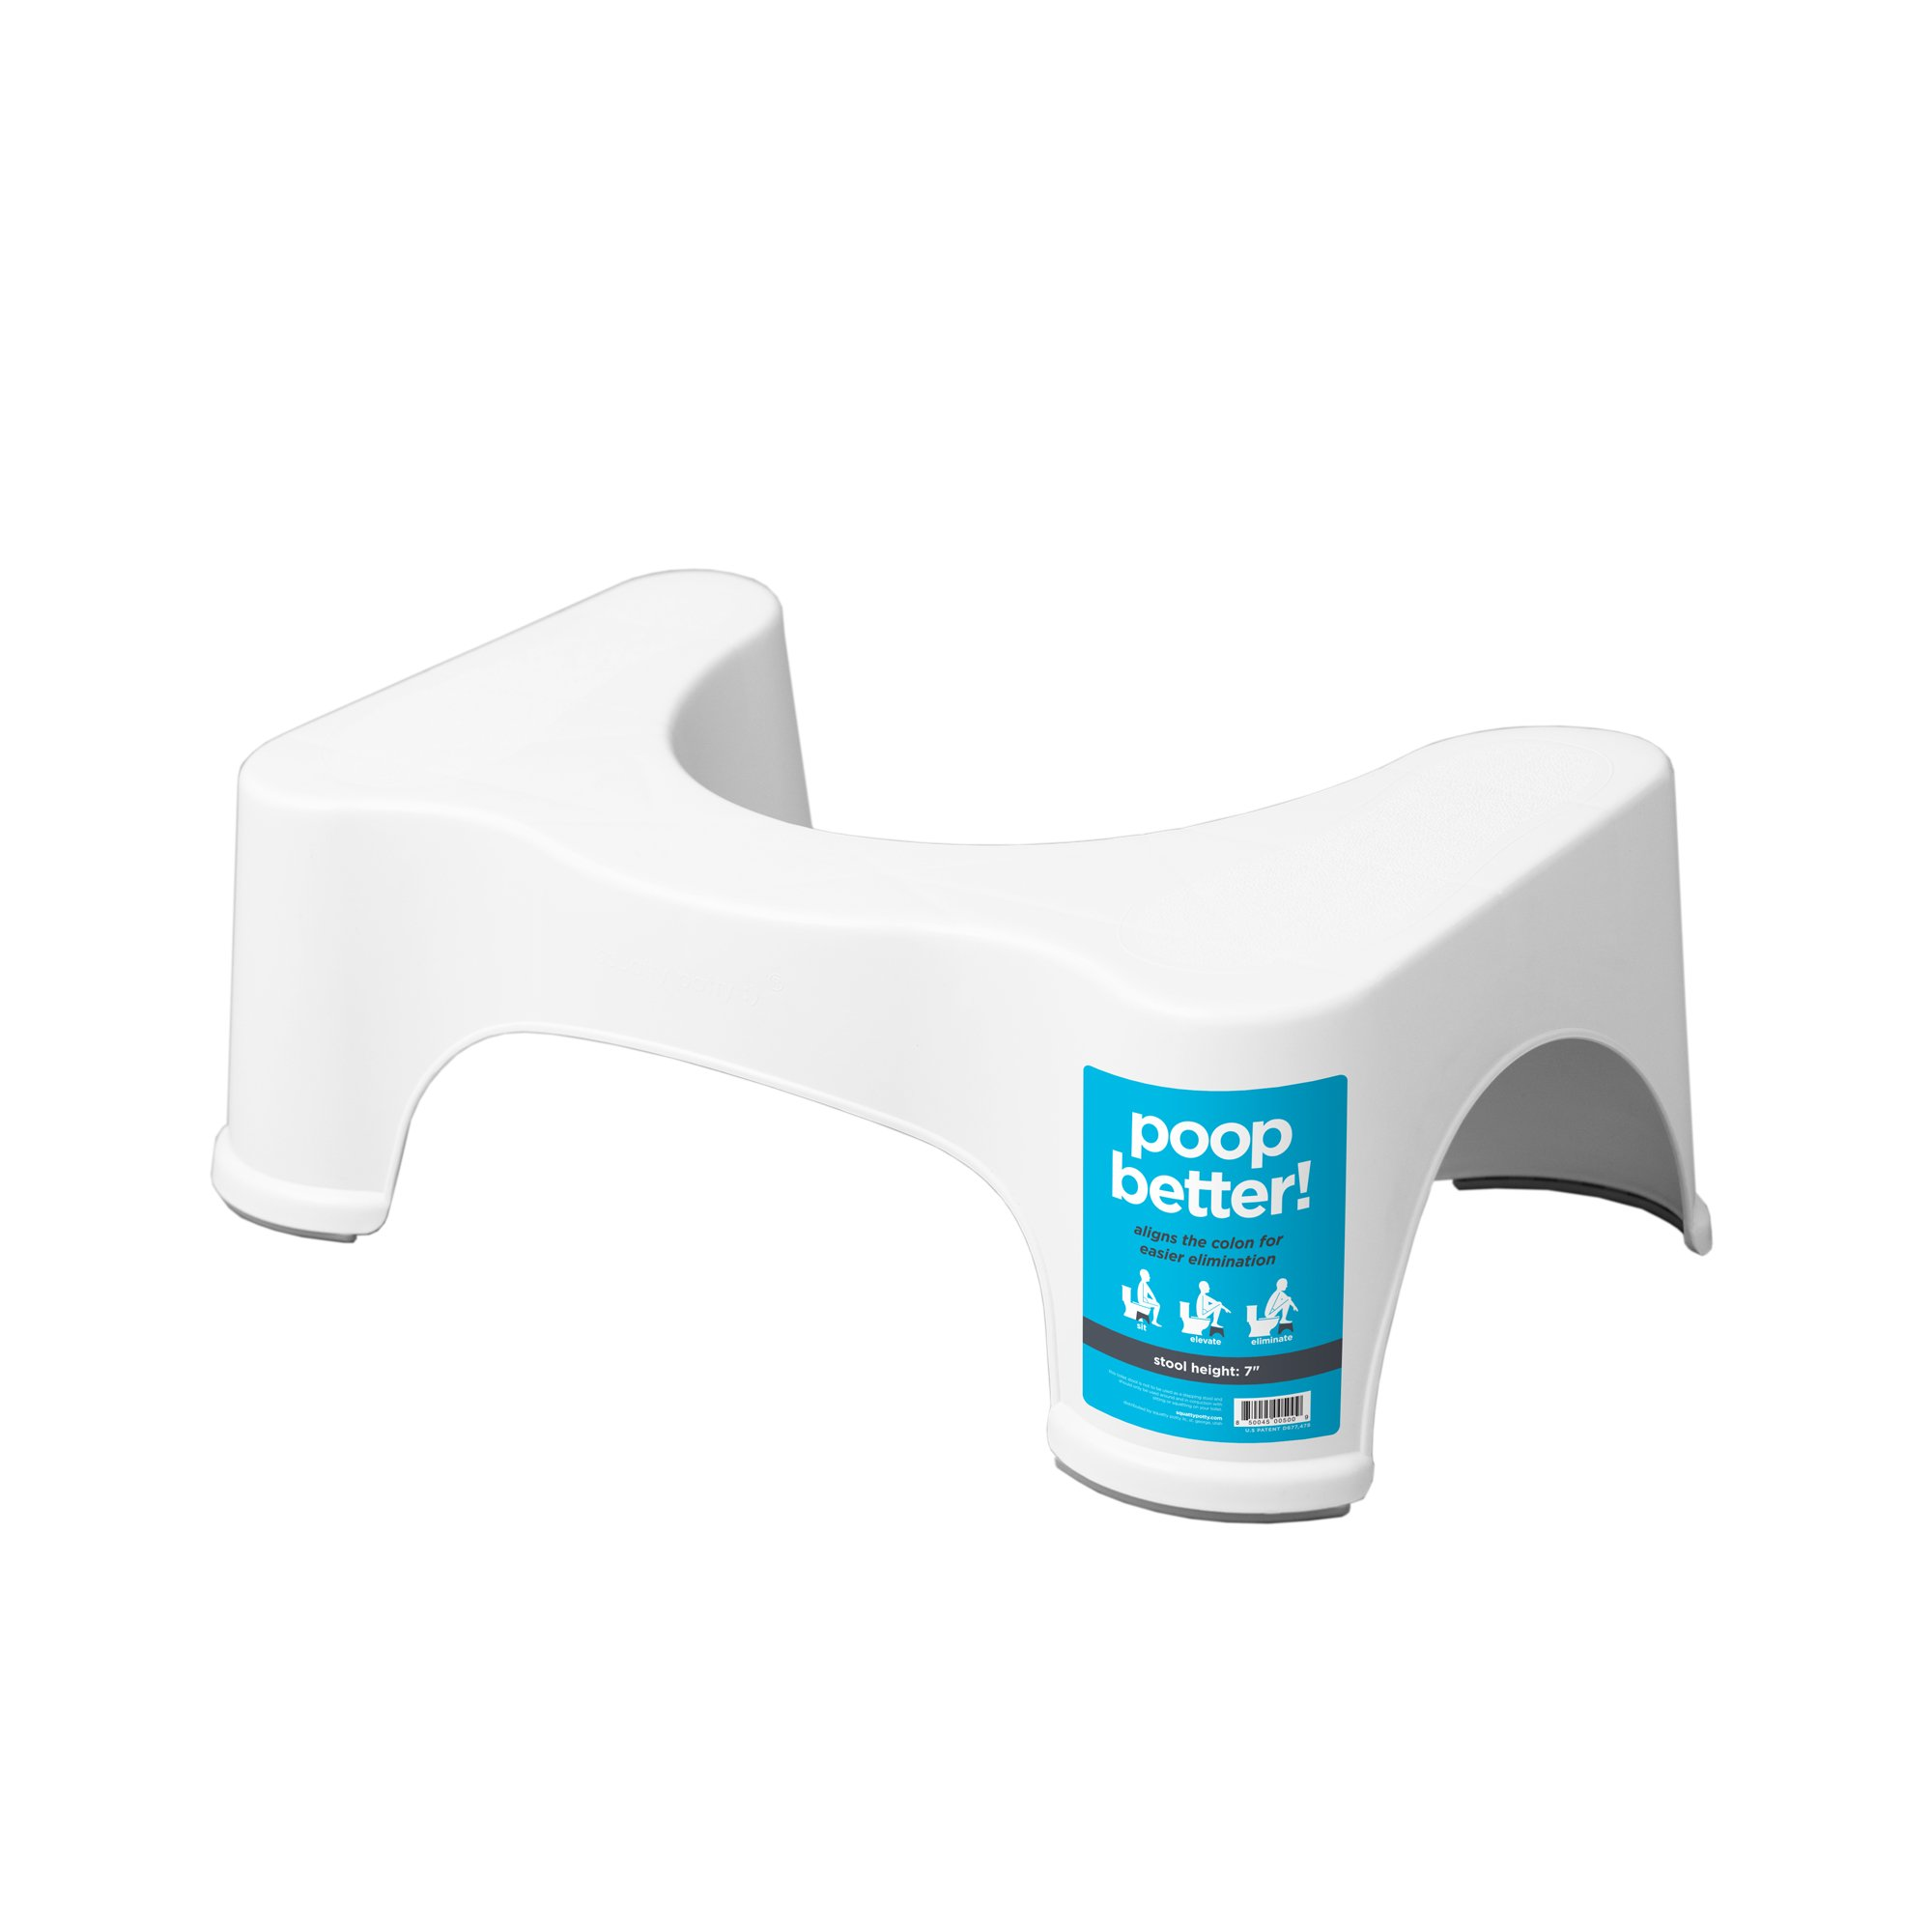 "Squatty Potty The Original Bathroom Toilet Stool, White, 7"" product image"